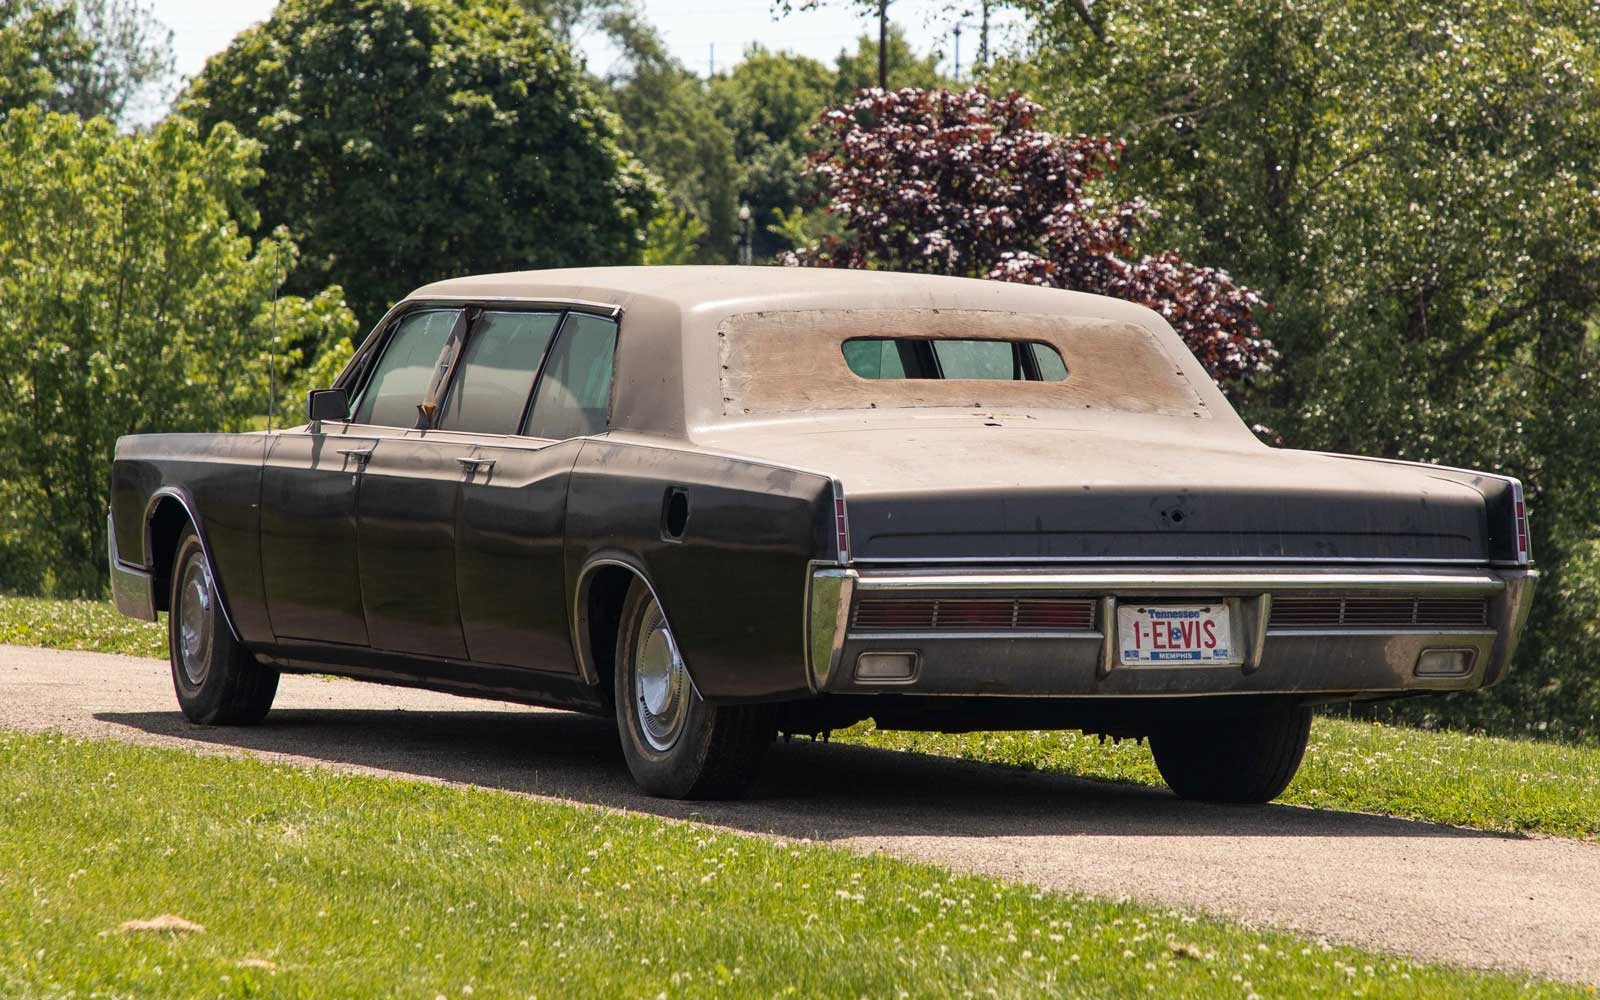 Elvis Presley's 1967 Lincoln Continenal limousine for auction